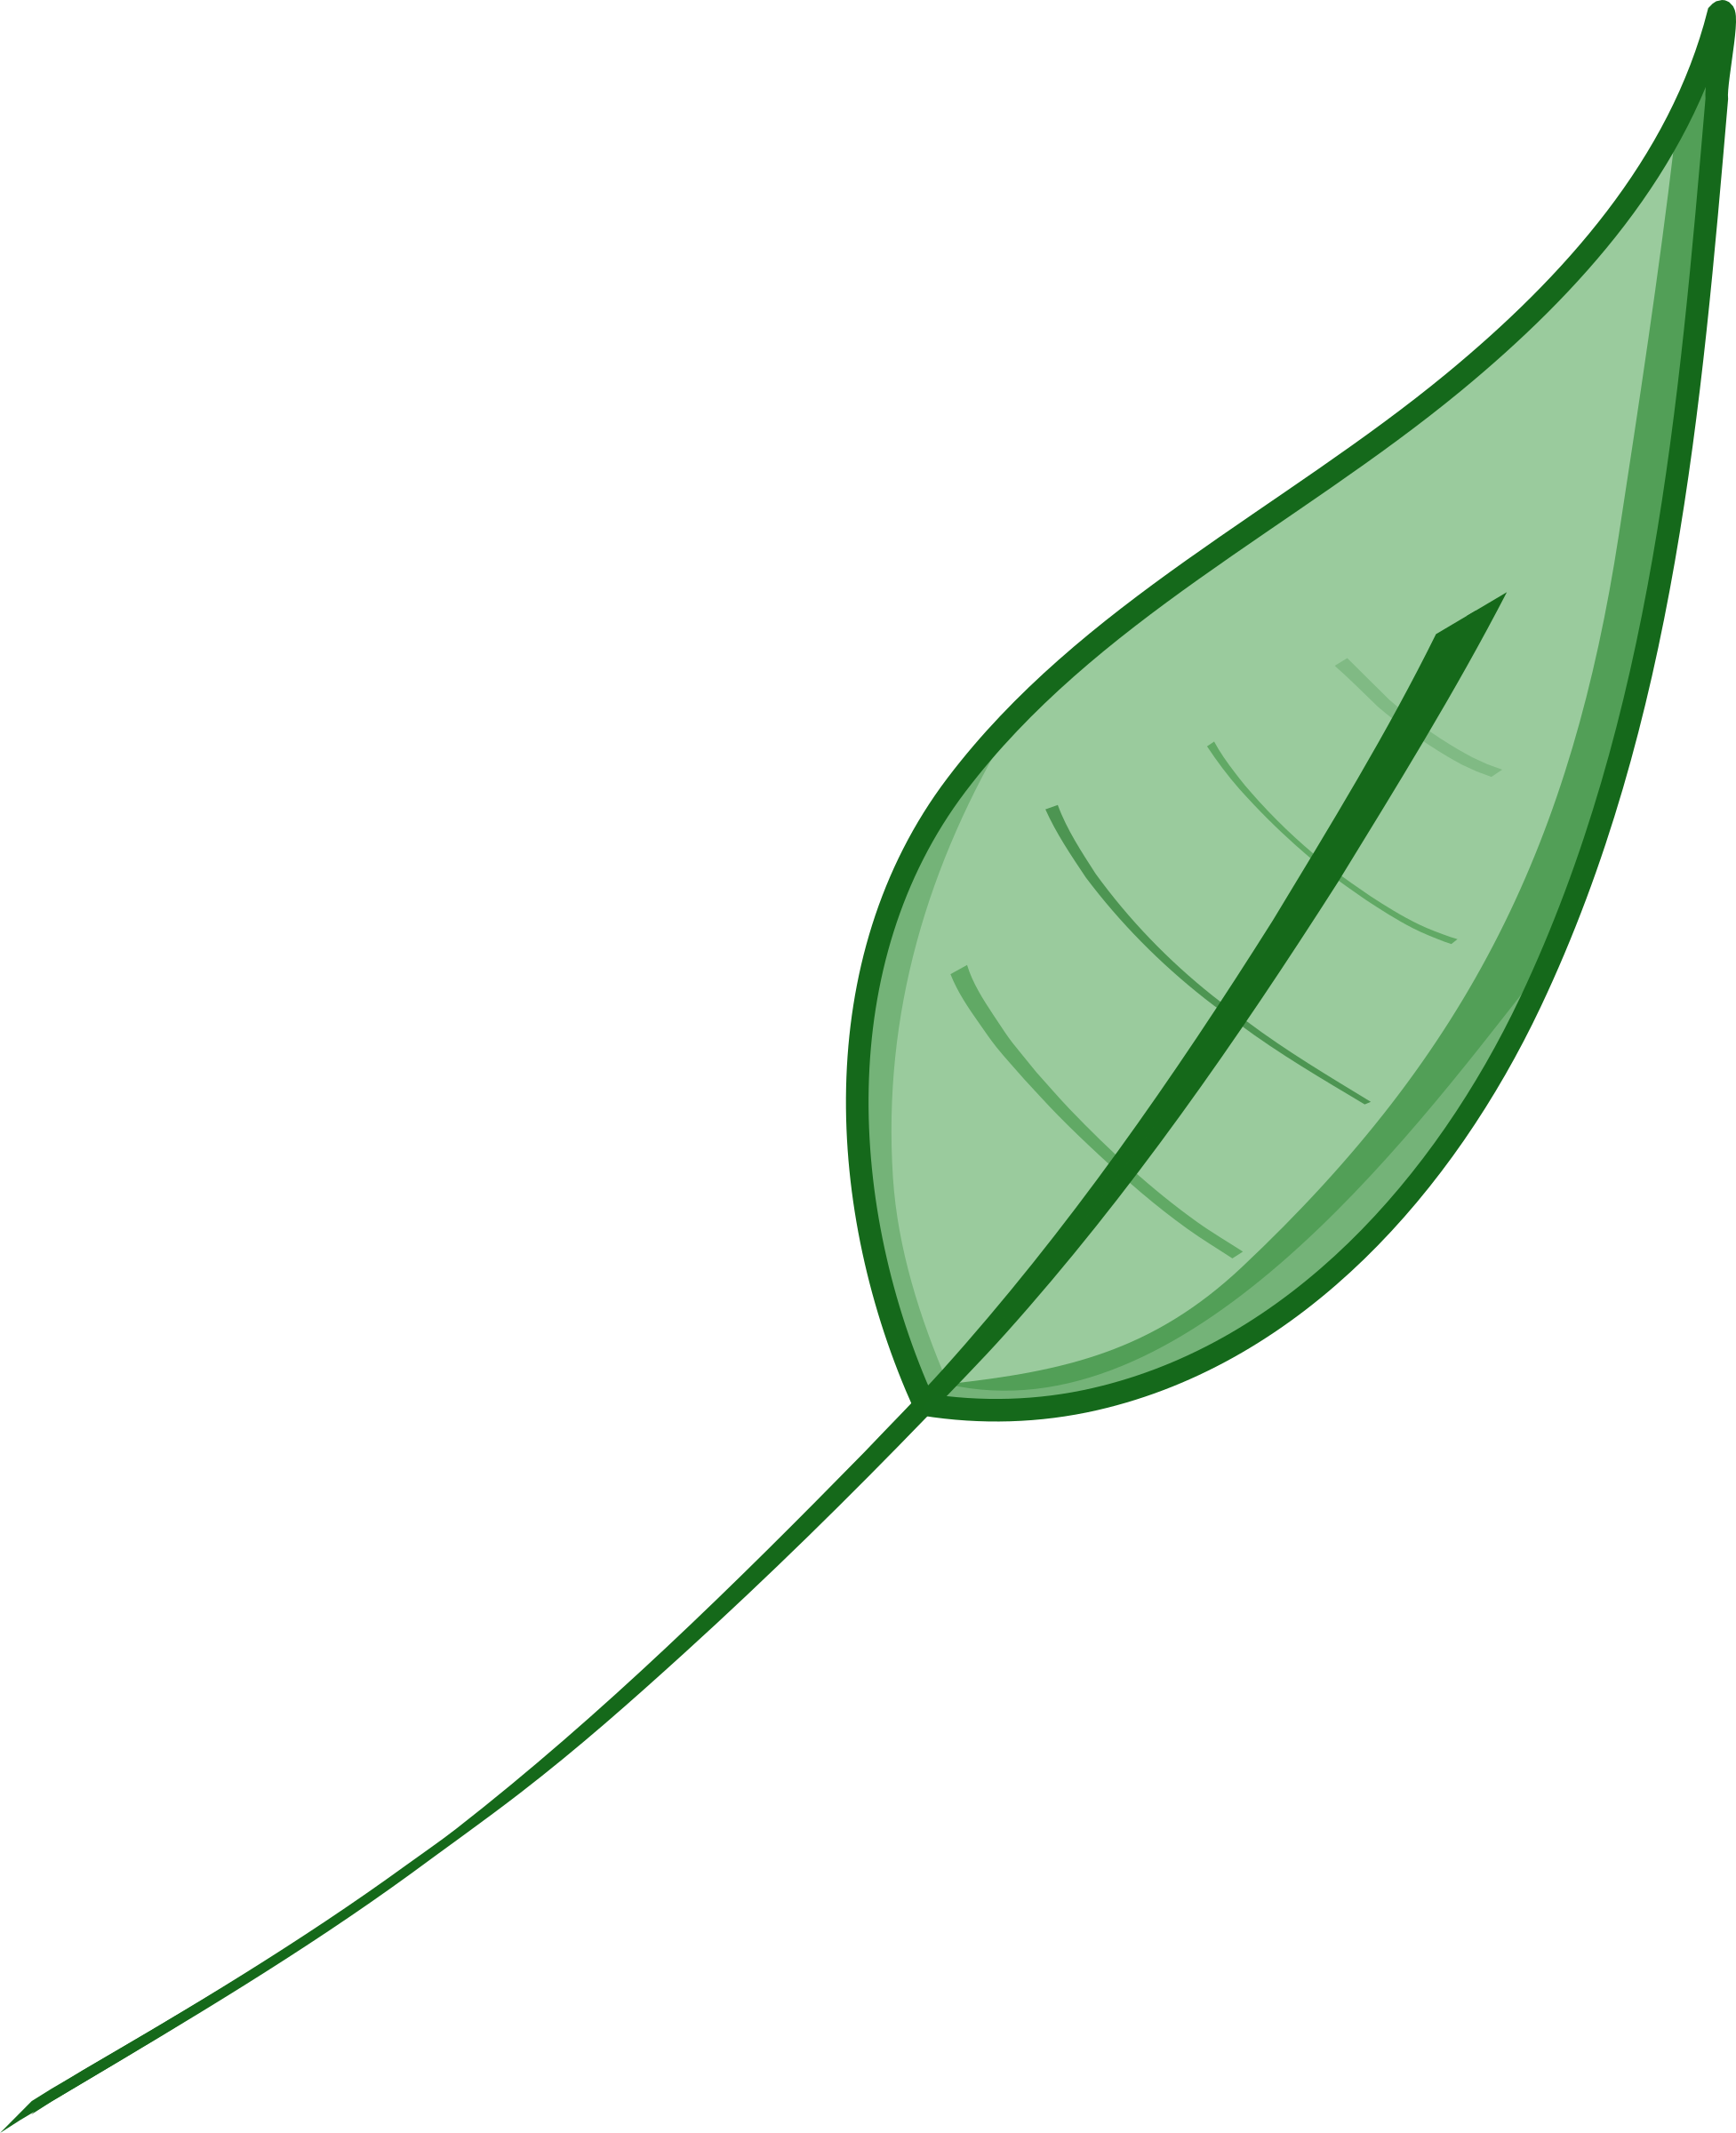 Green leaf by laobc